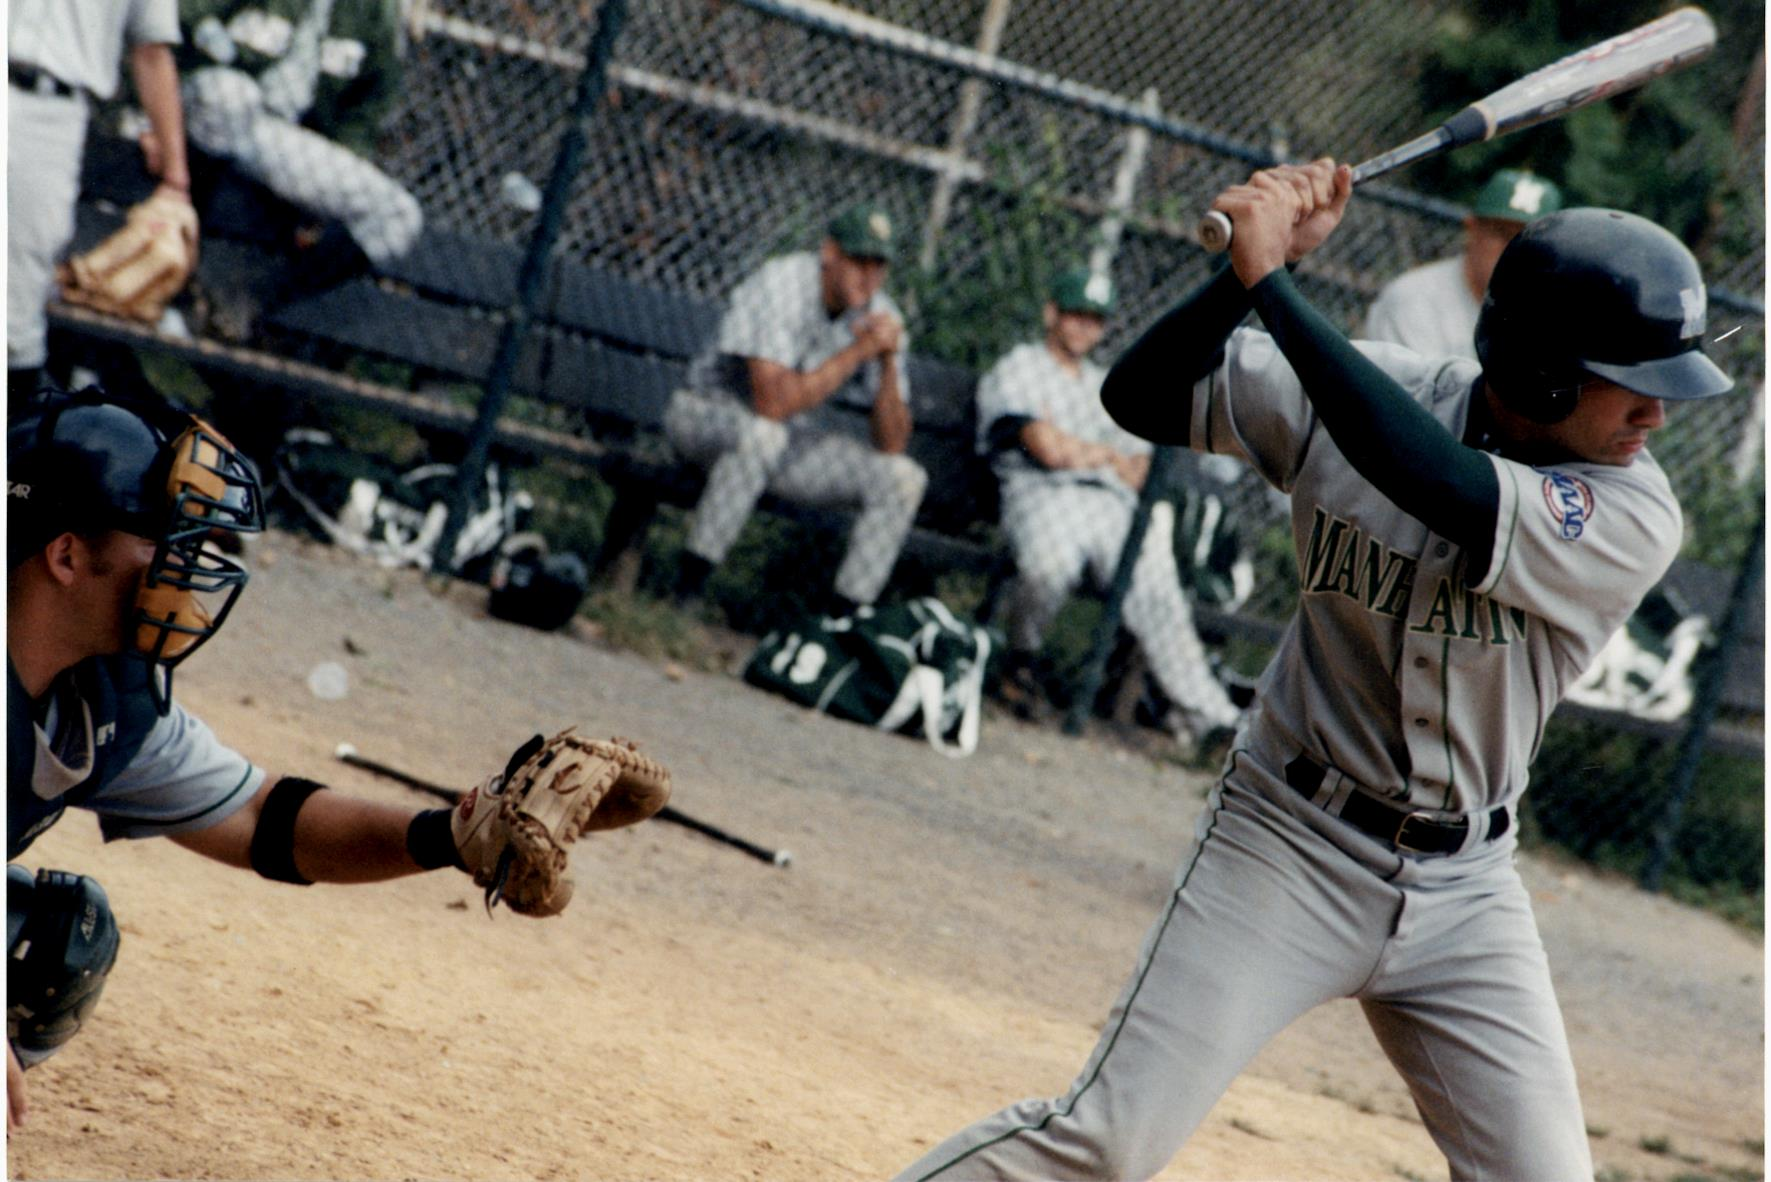 Photograph of Manhattan College Baseball player at bat.